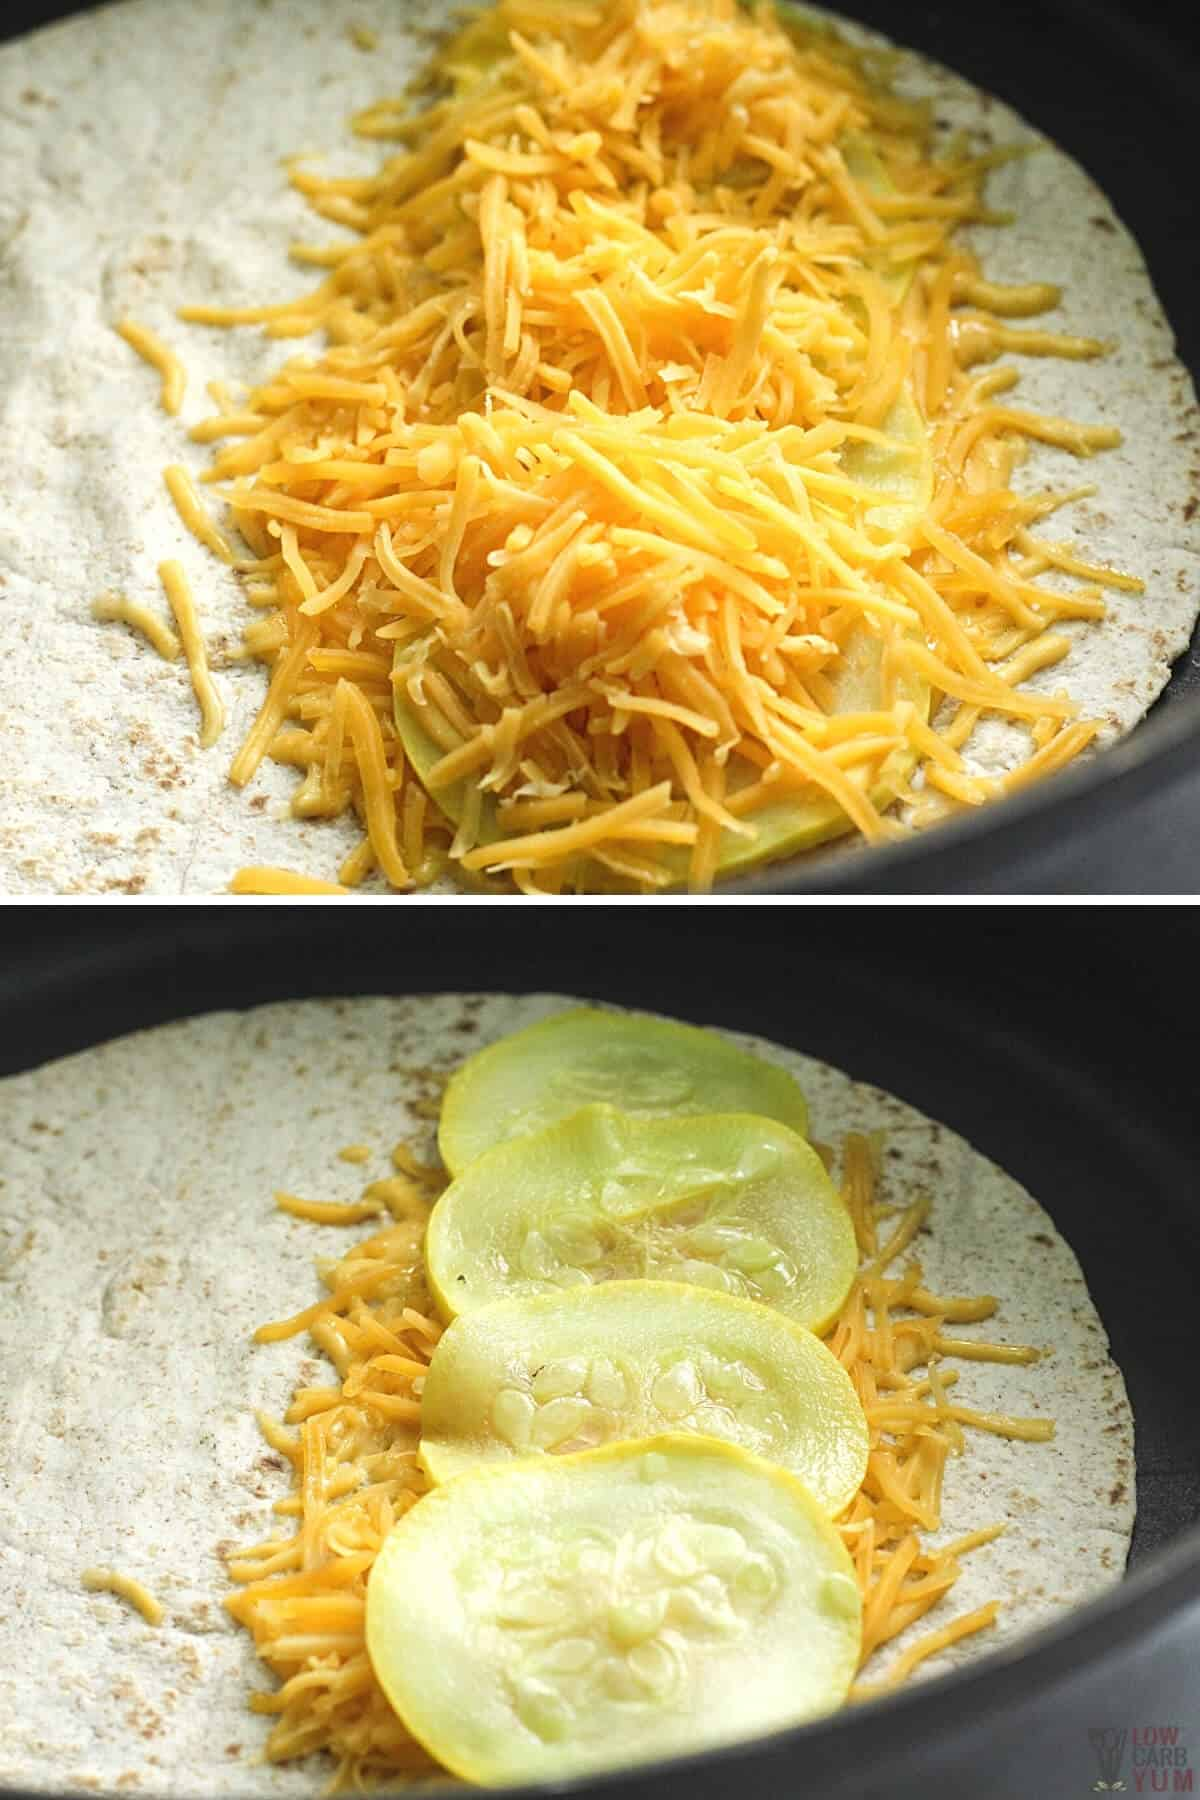 cheese and squash in a tortilla